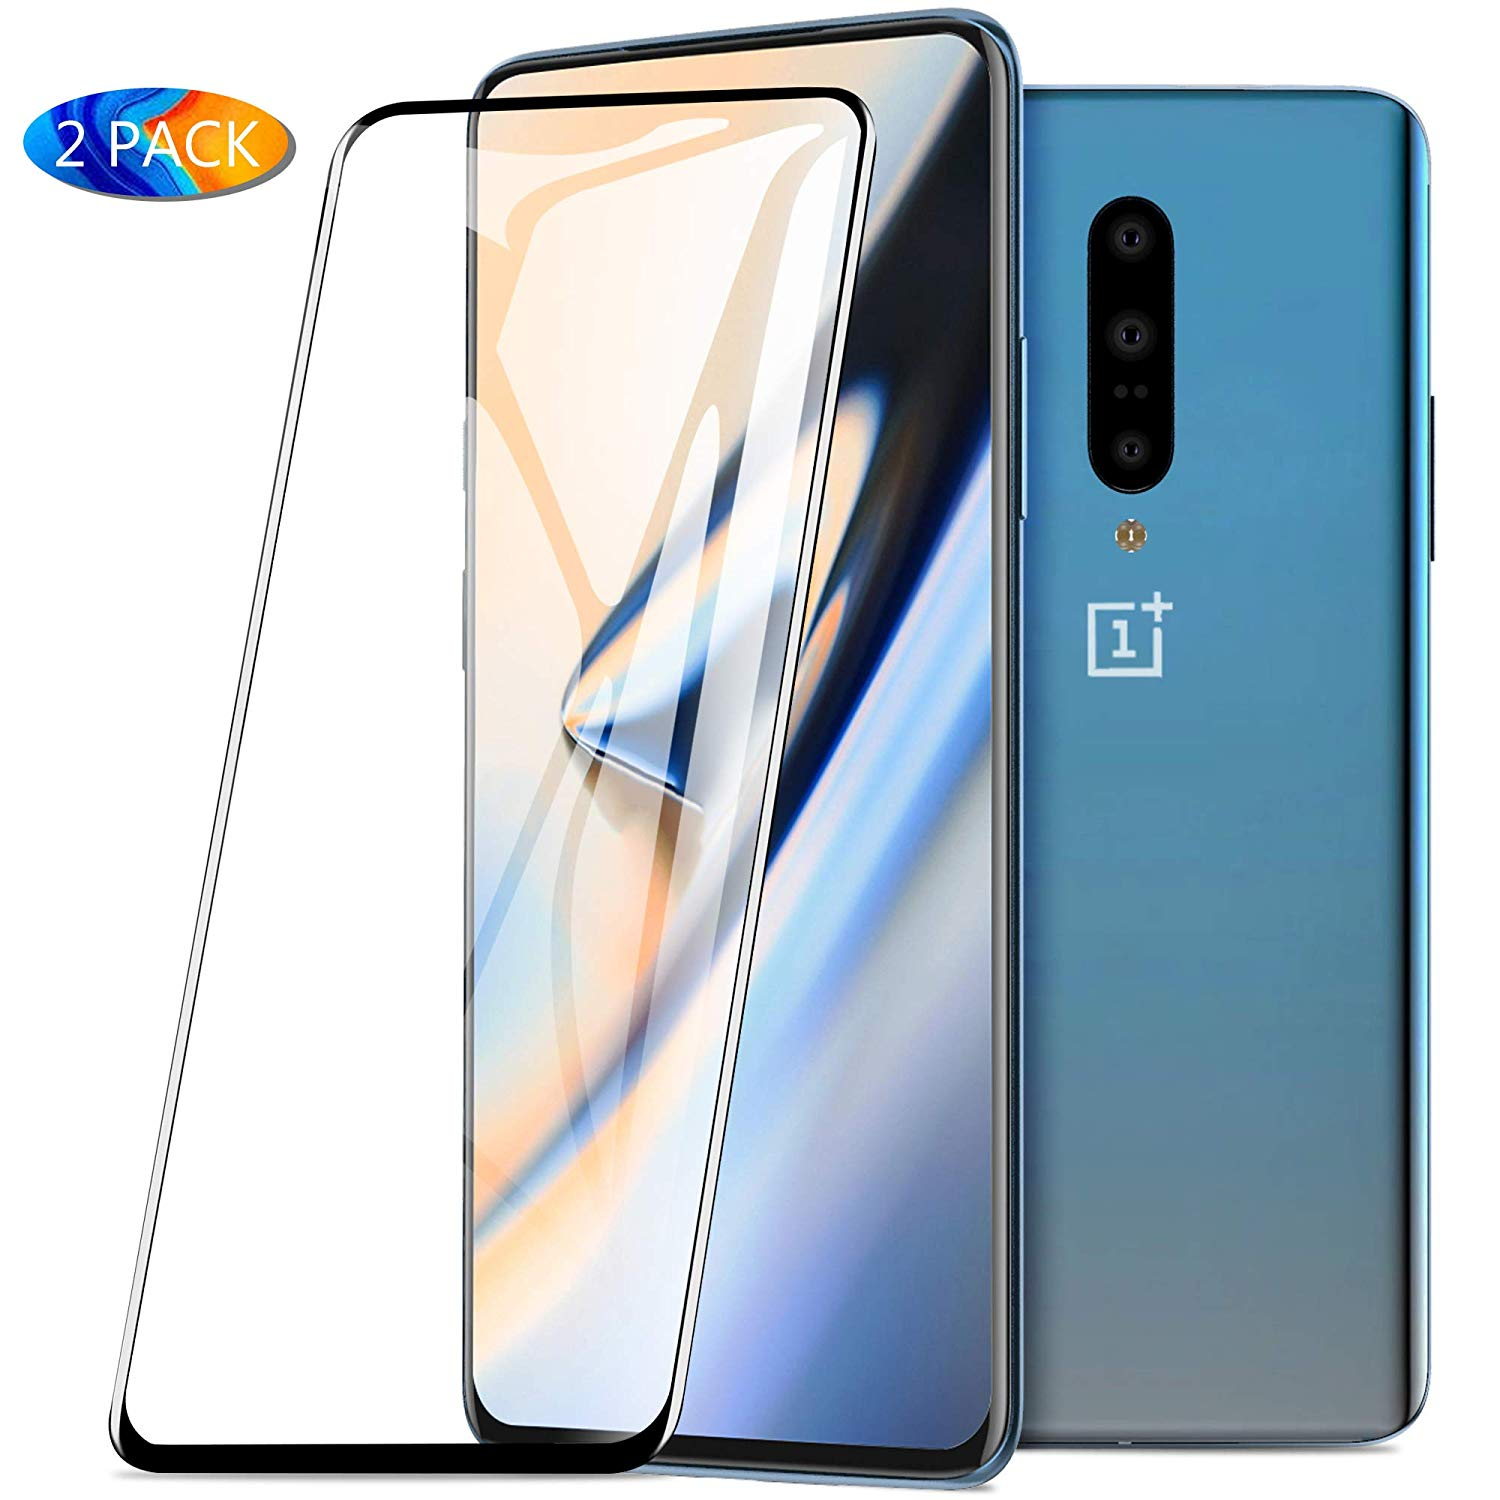 IVSO Screen Protector for OnePlus 7 Pro